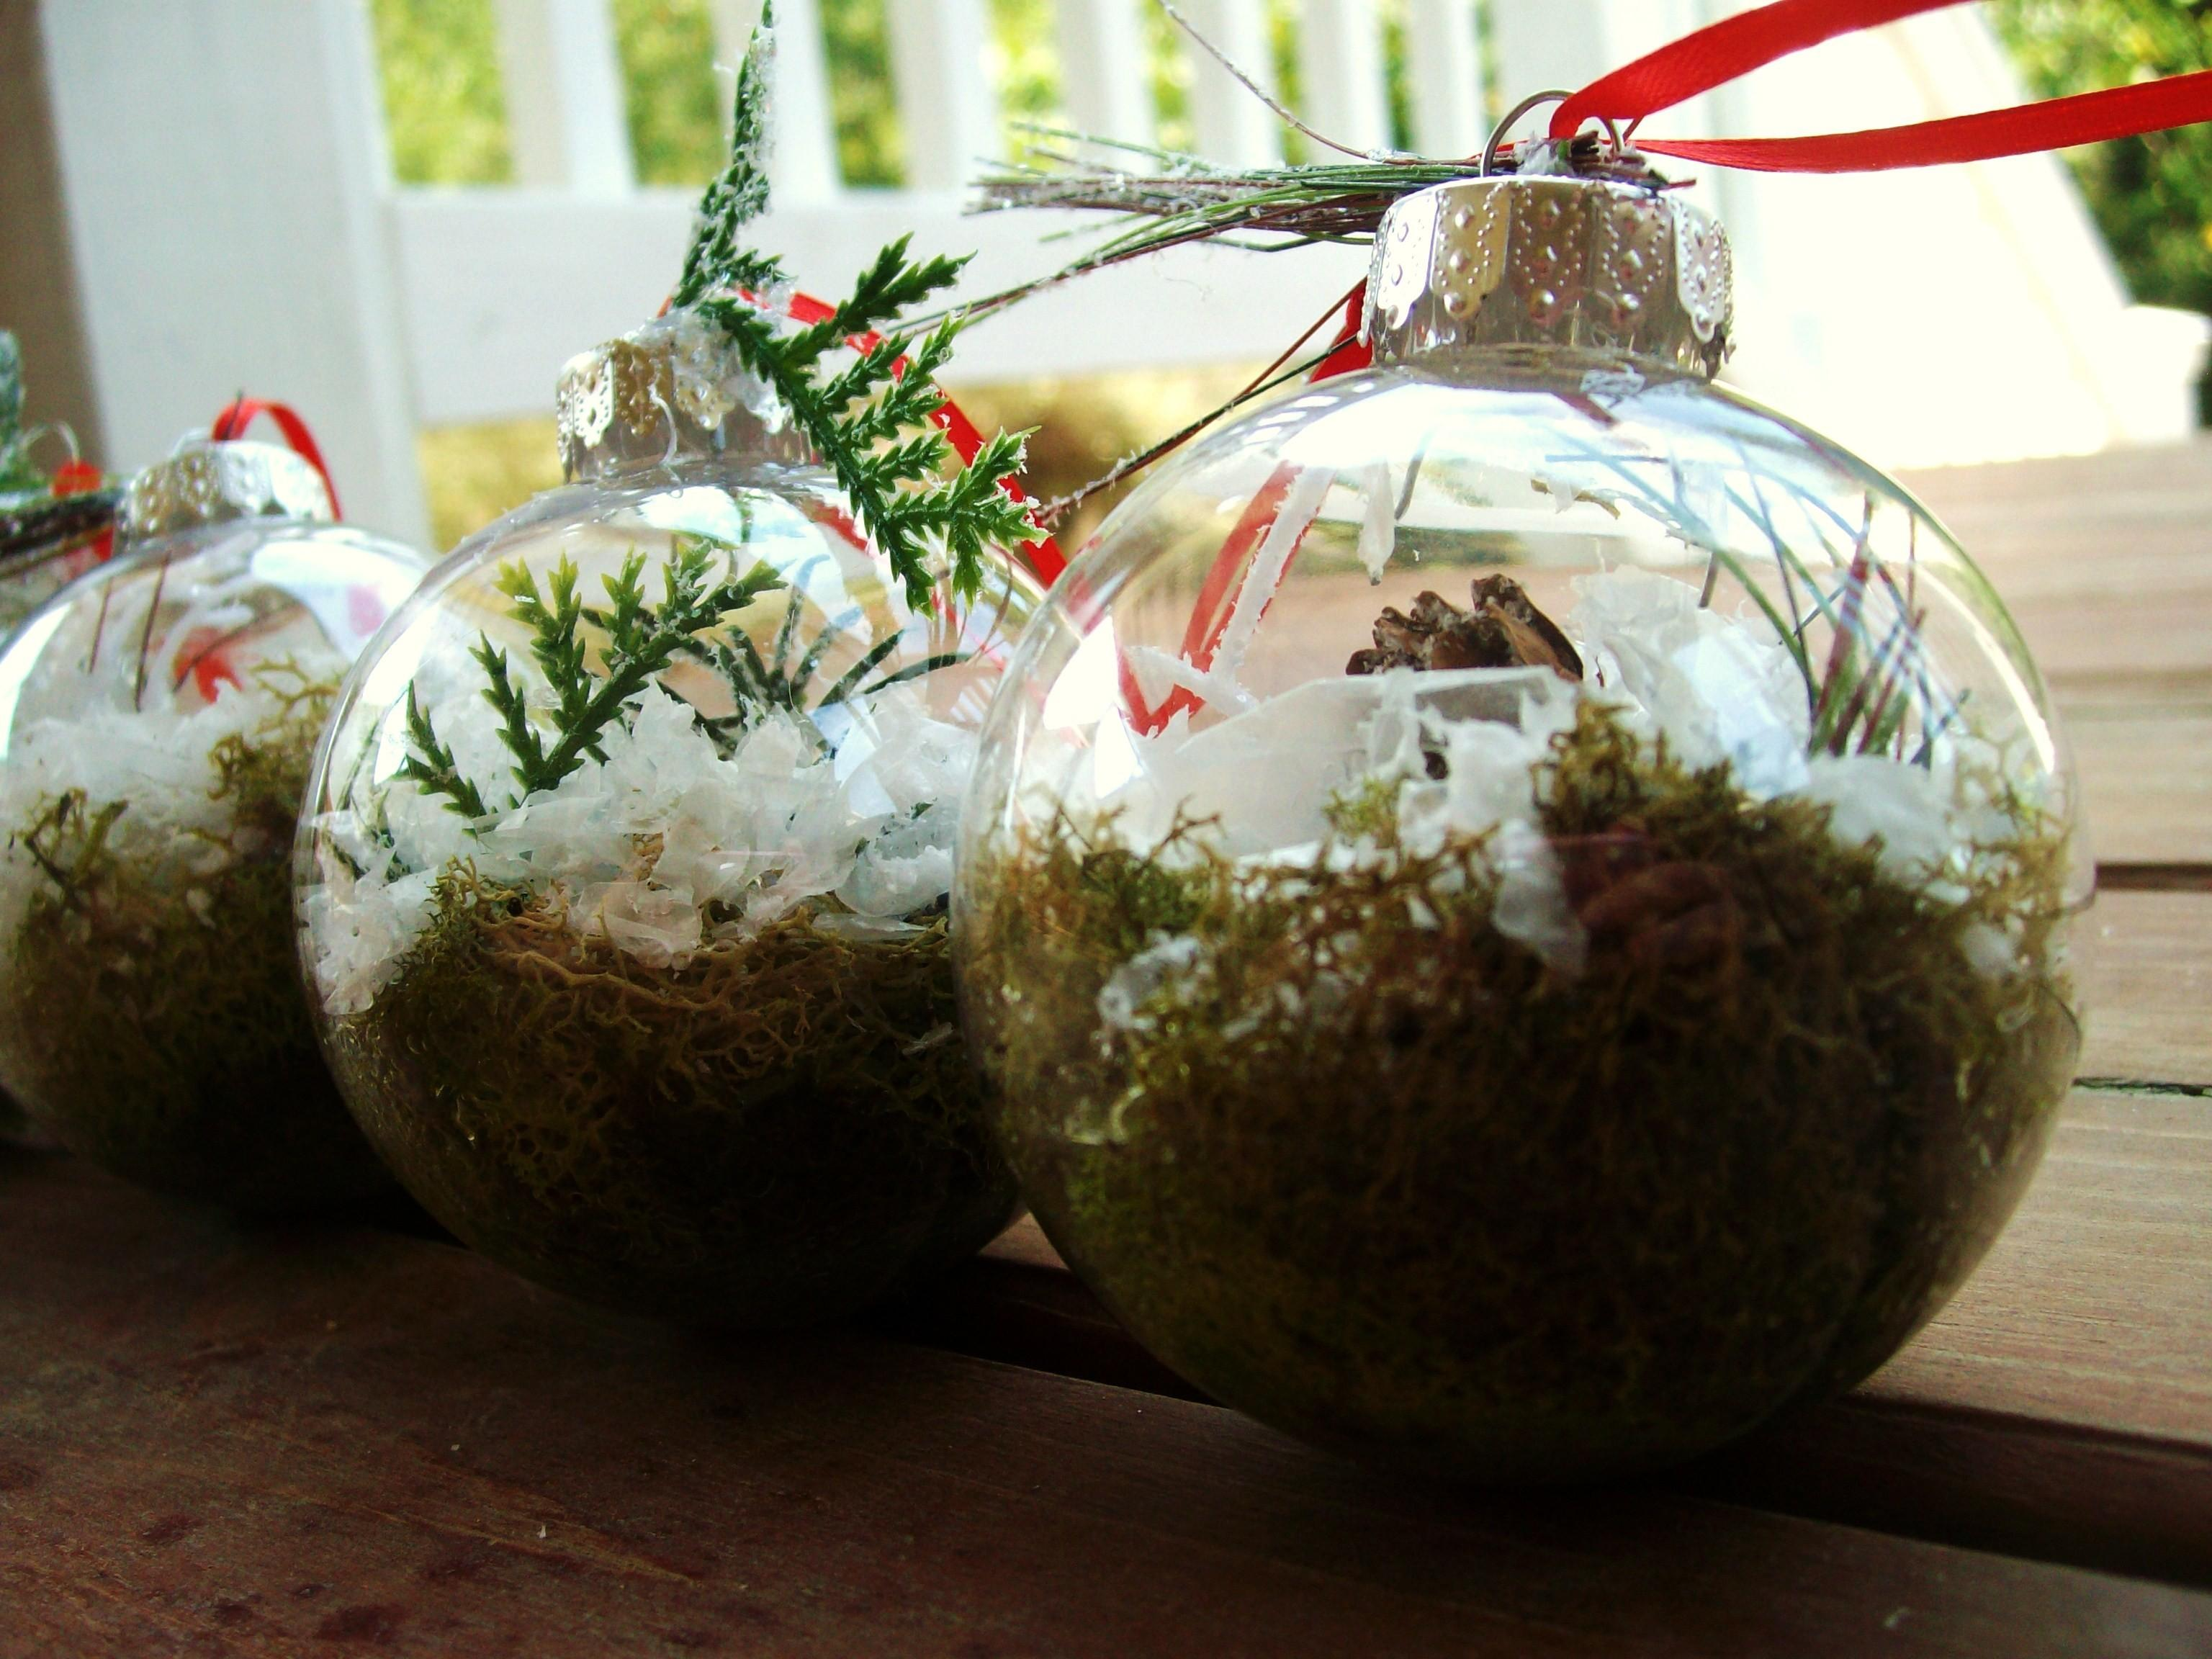 Terrarium Christmas Ornaments Diy Crafting Tutorial